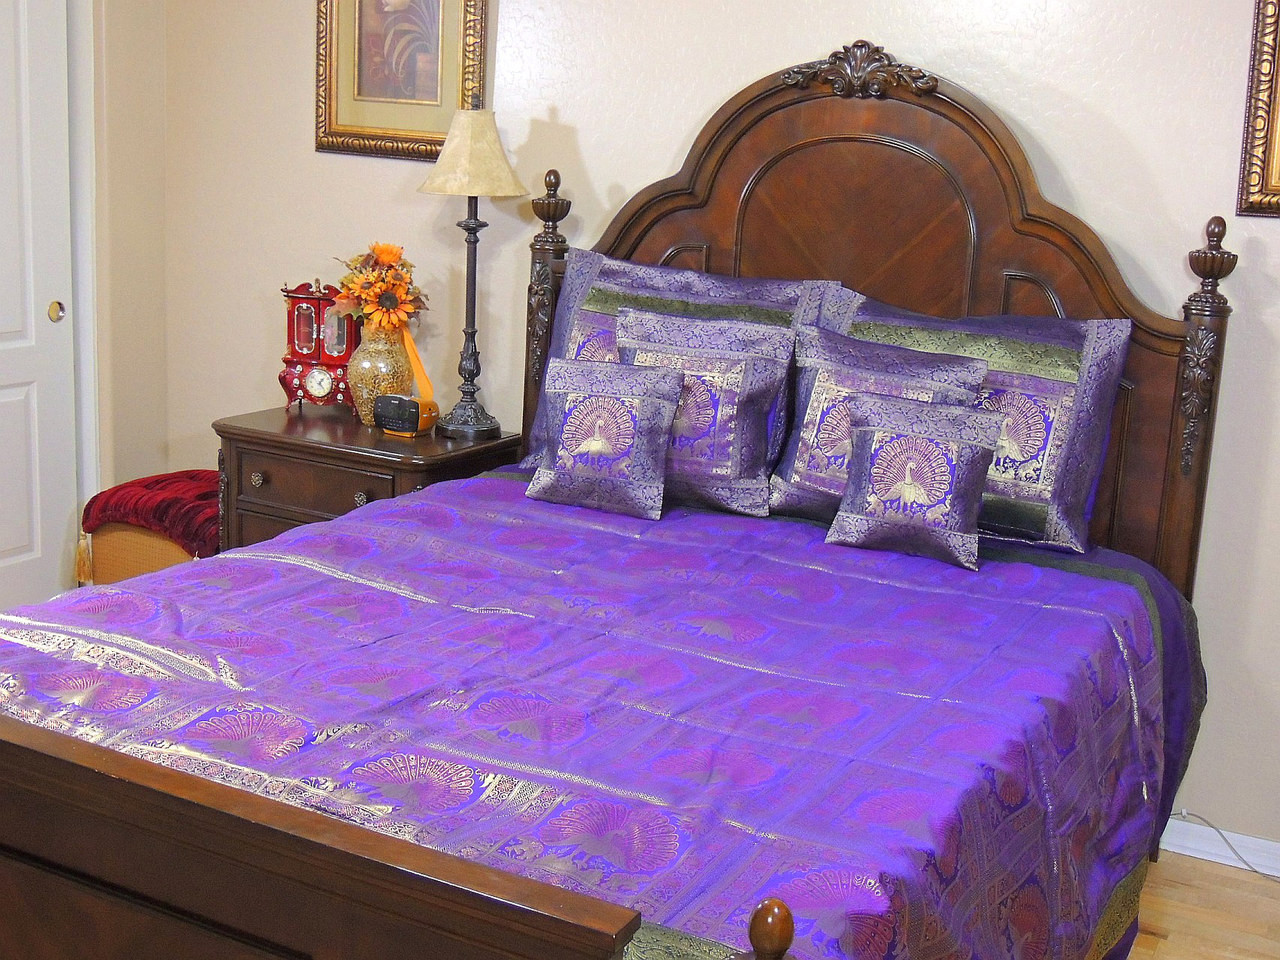 Peacock bedroom set - Peacock Bedroom Set Purple Indian Inspired Peacock Bedding Gold Brocade Quilted